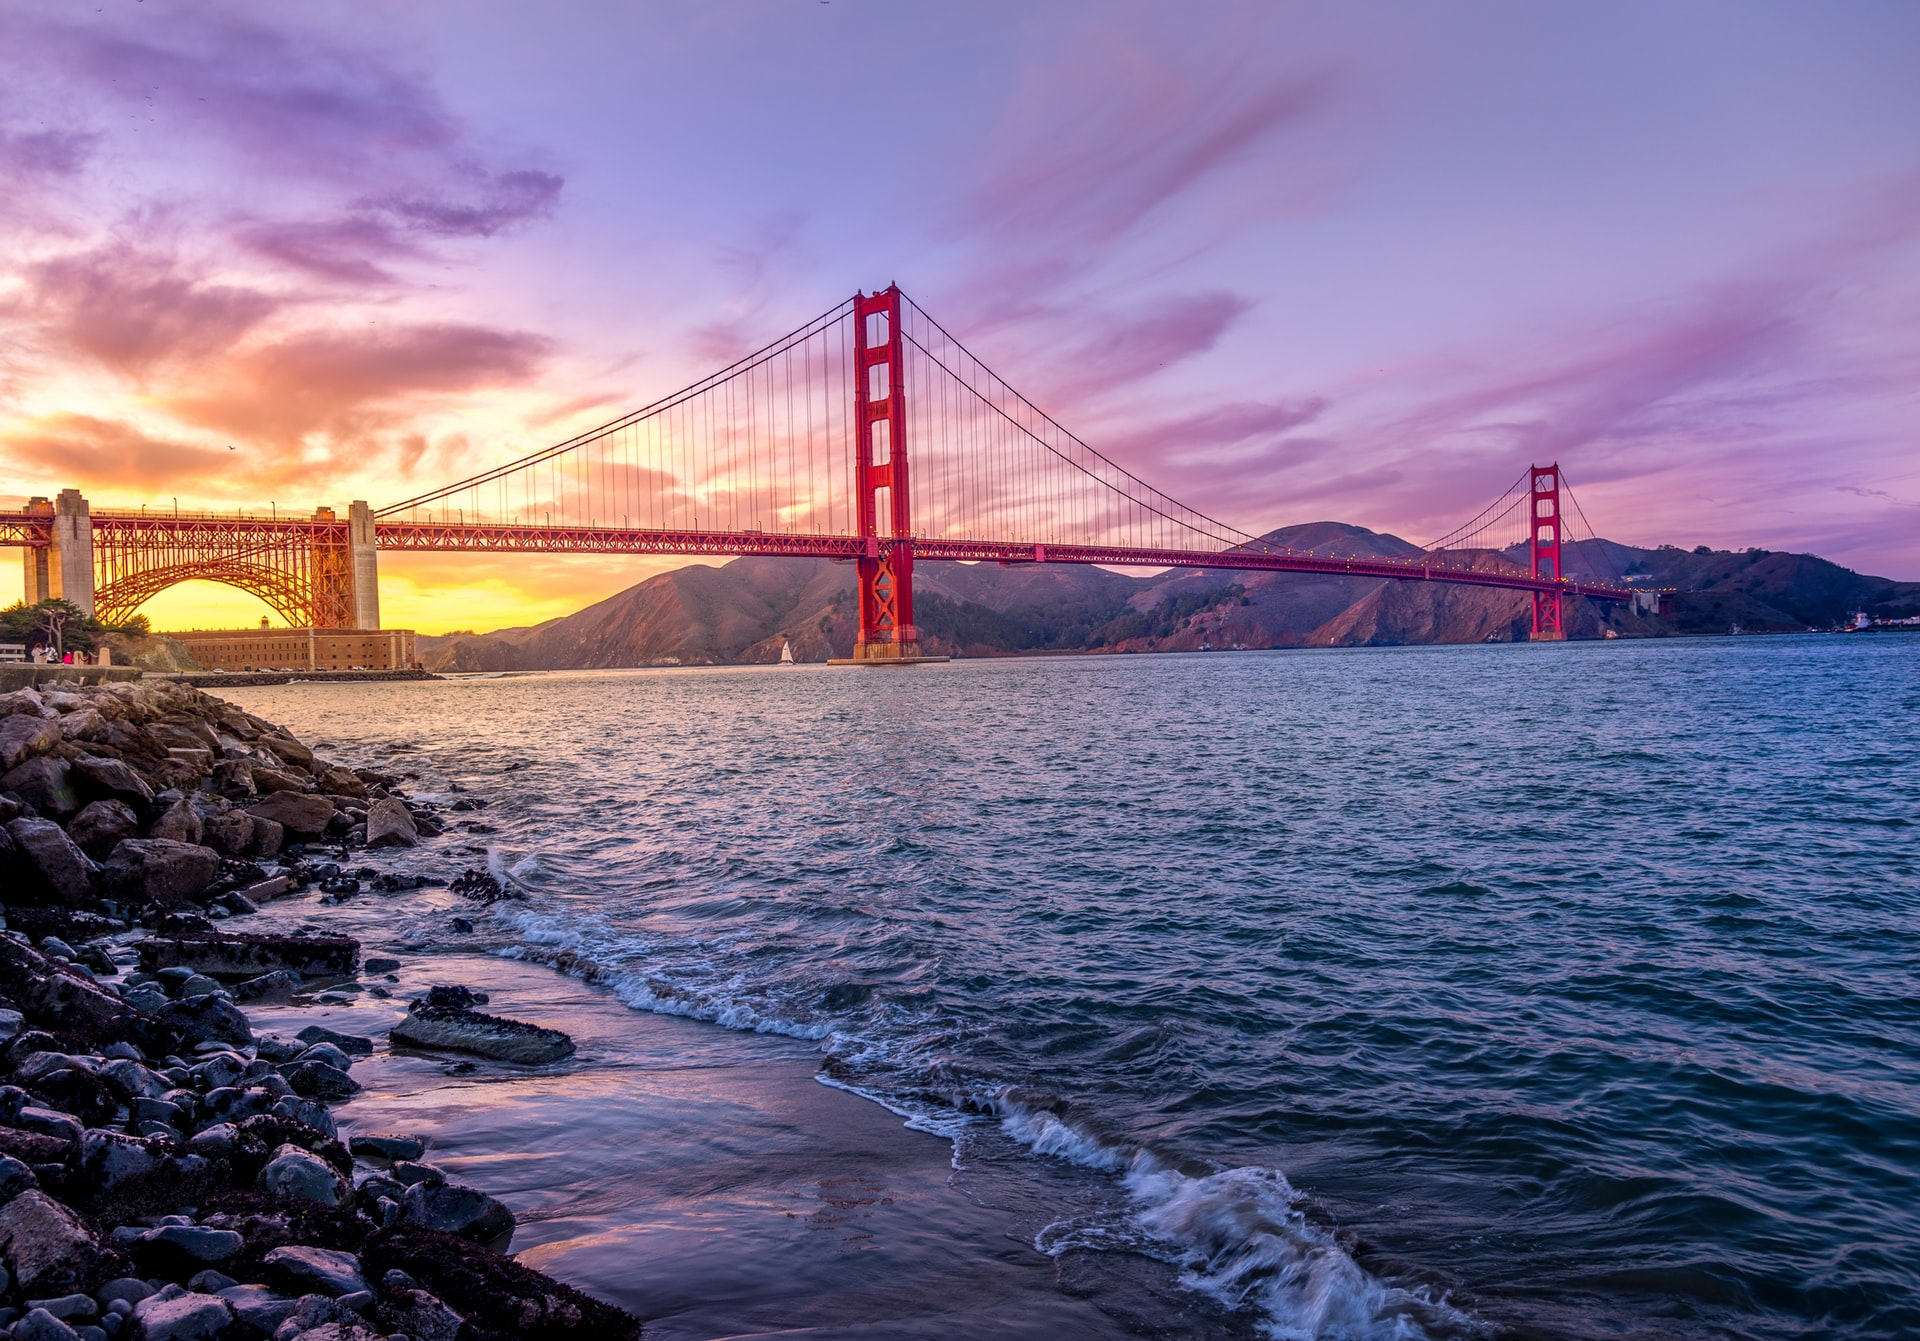 Crissy Field, a place to visit in San Francisco